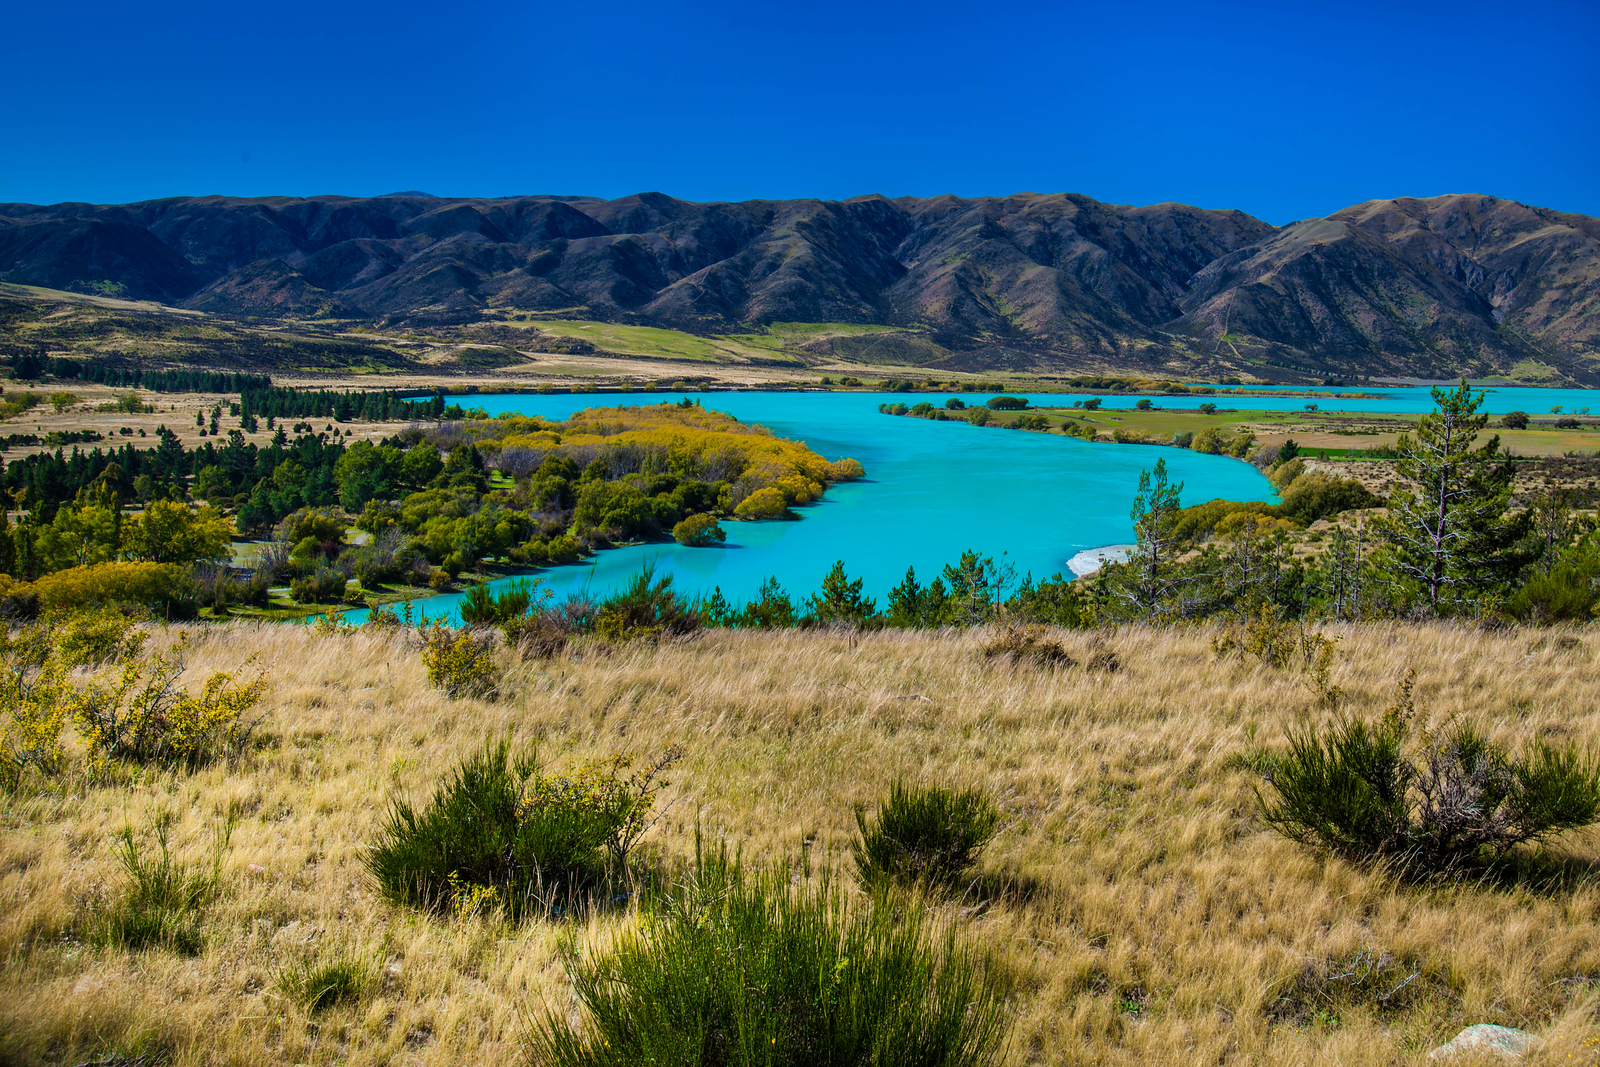 The turquoise glacial waters of the South Island, New Zealand